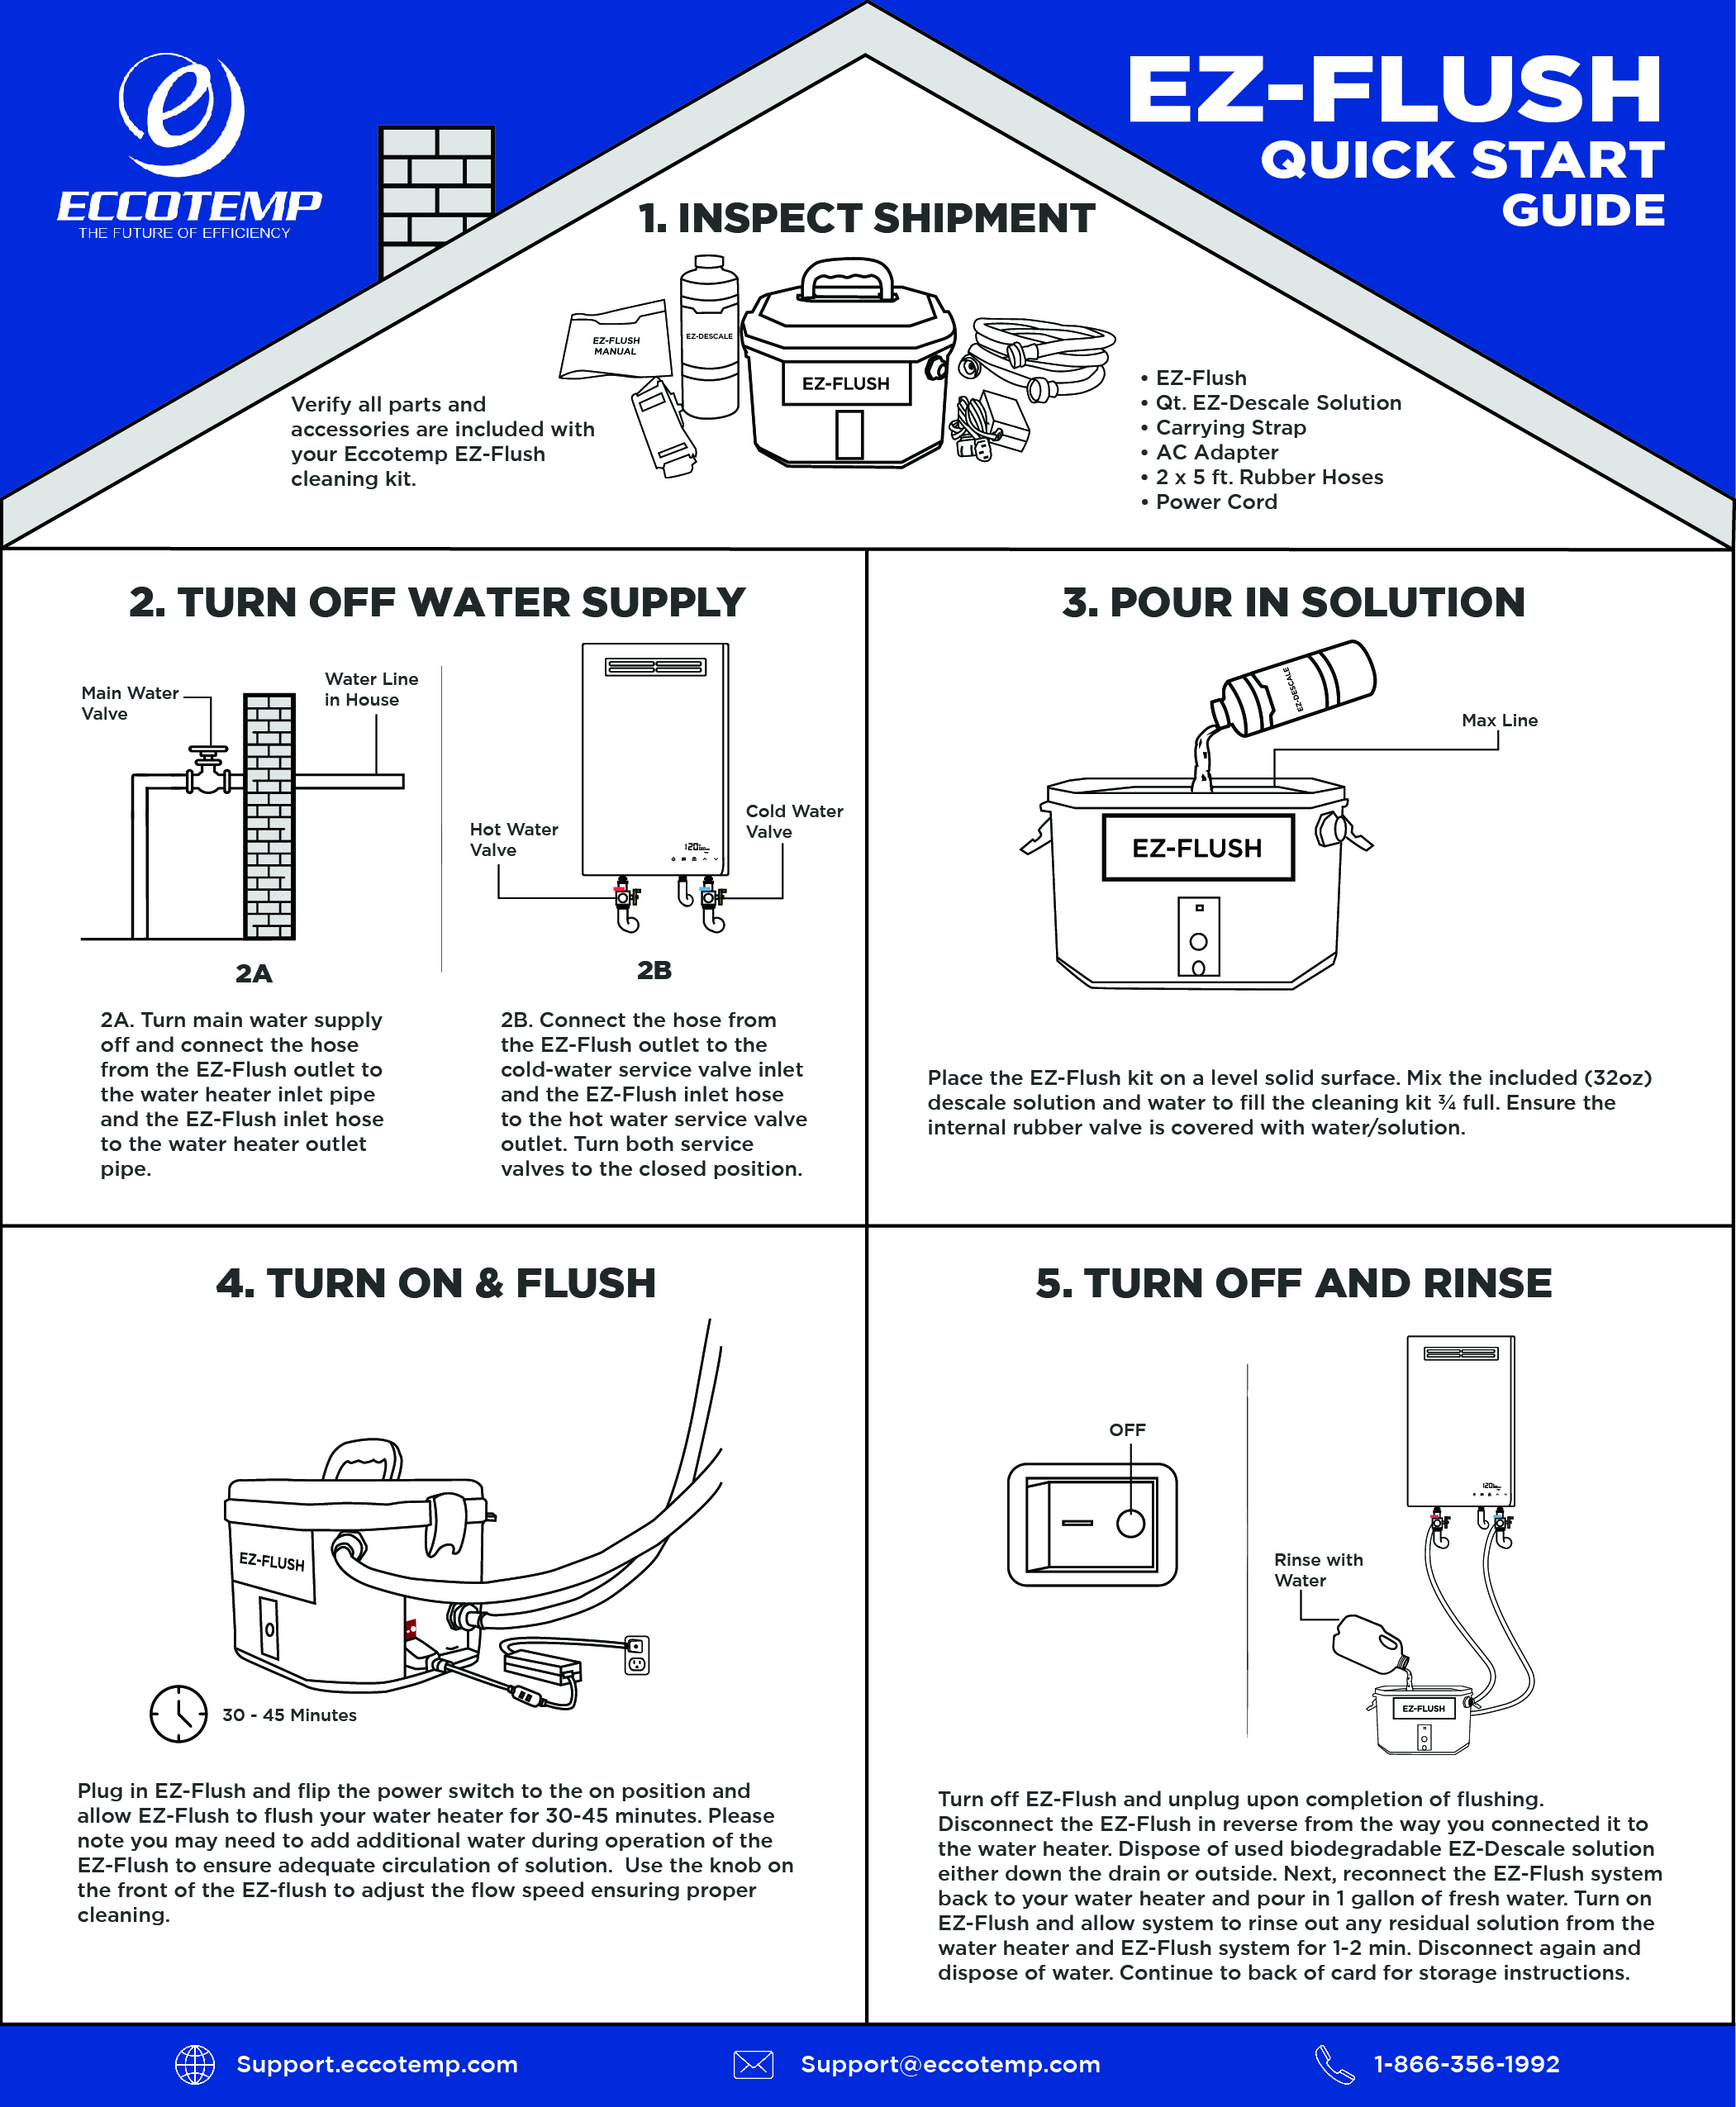 EZ_FLUSH_Startup_Guide_Final_Front.jpg